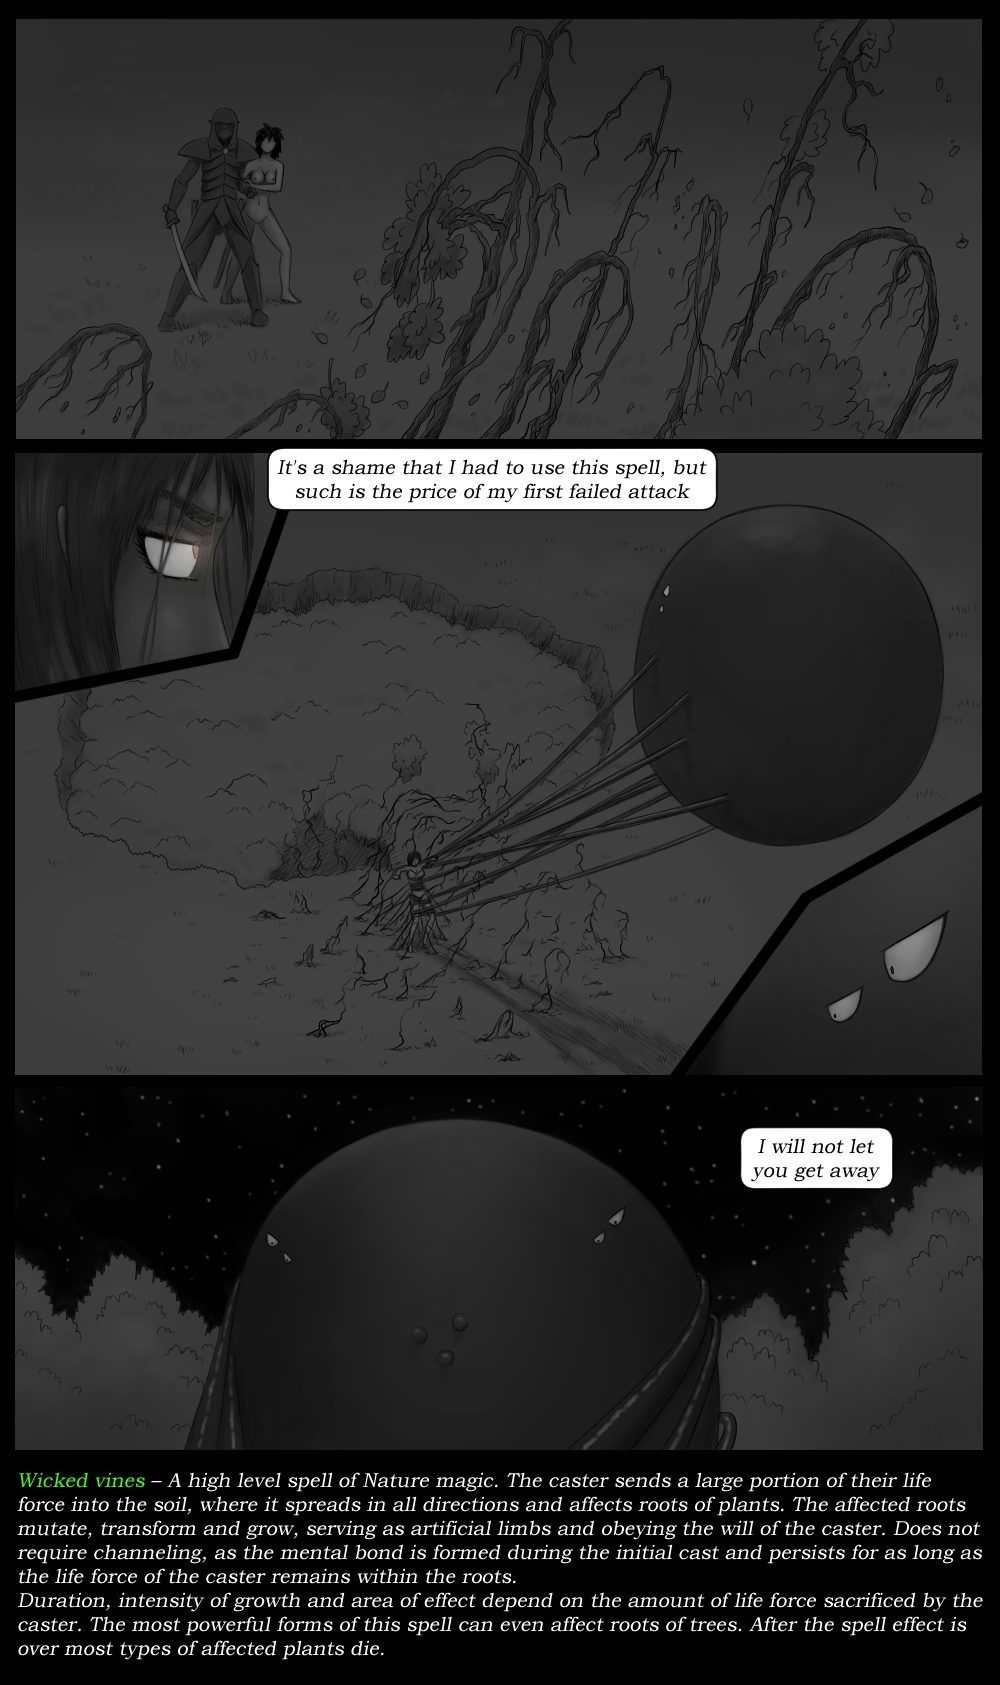 Page 76 - Battle against Glowslimer (Part 23)